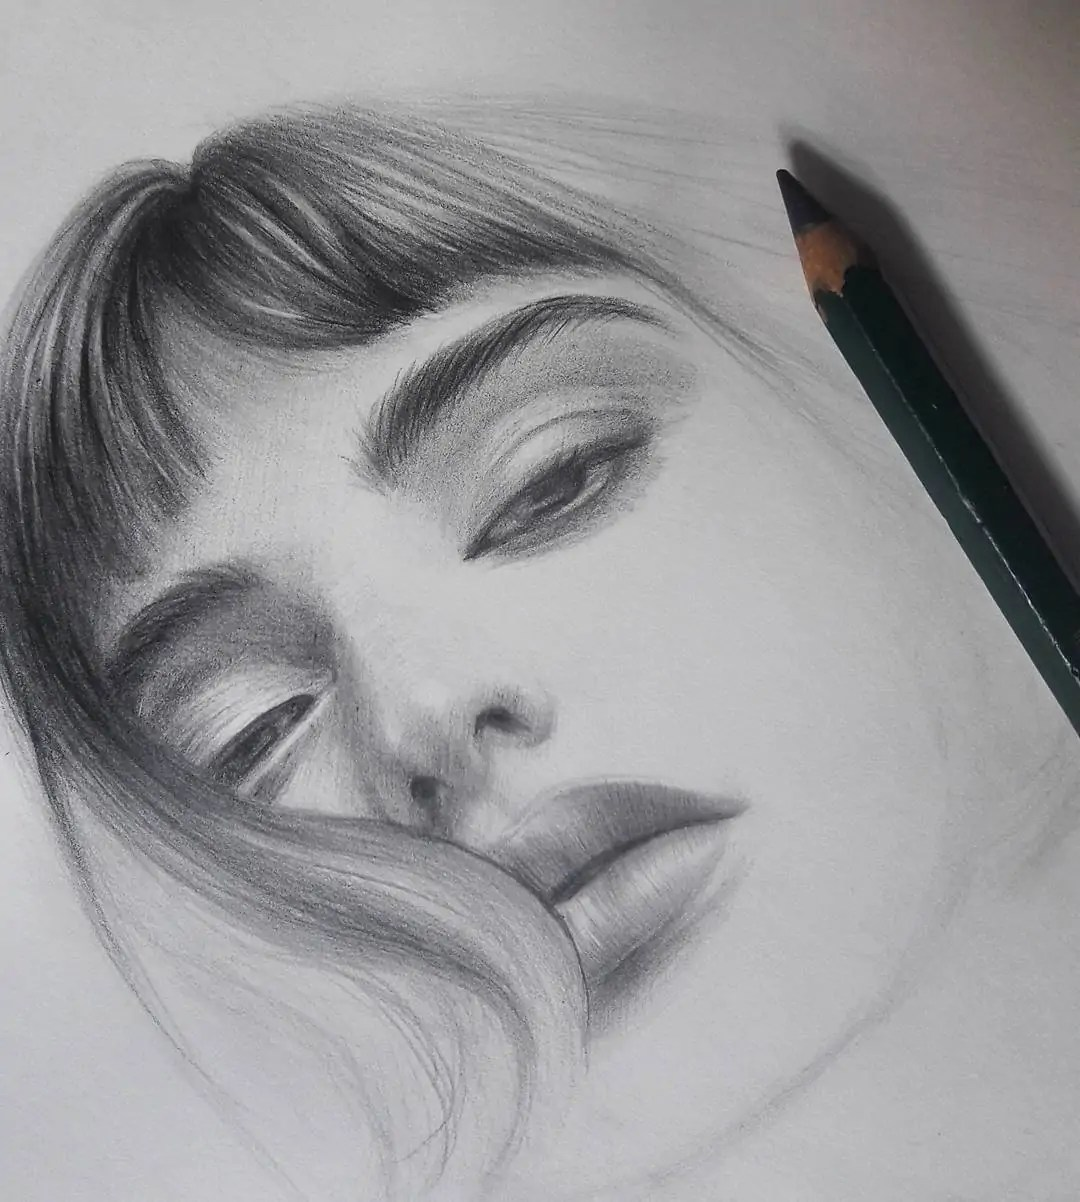 100+ Stunning Realistic Portrait Drawings 289